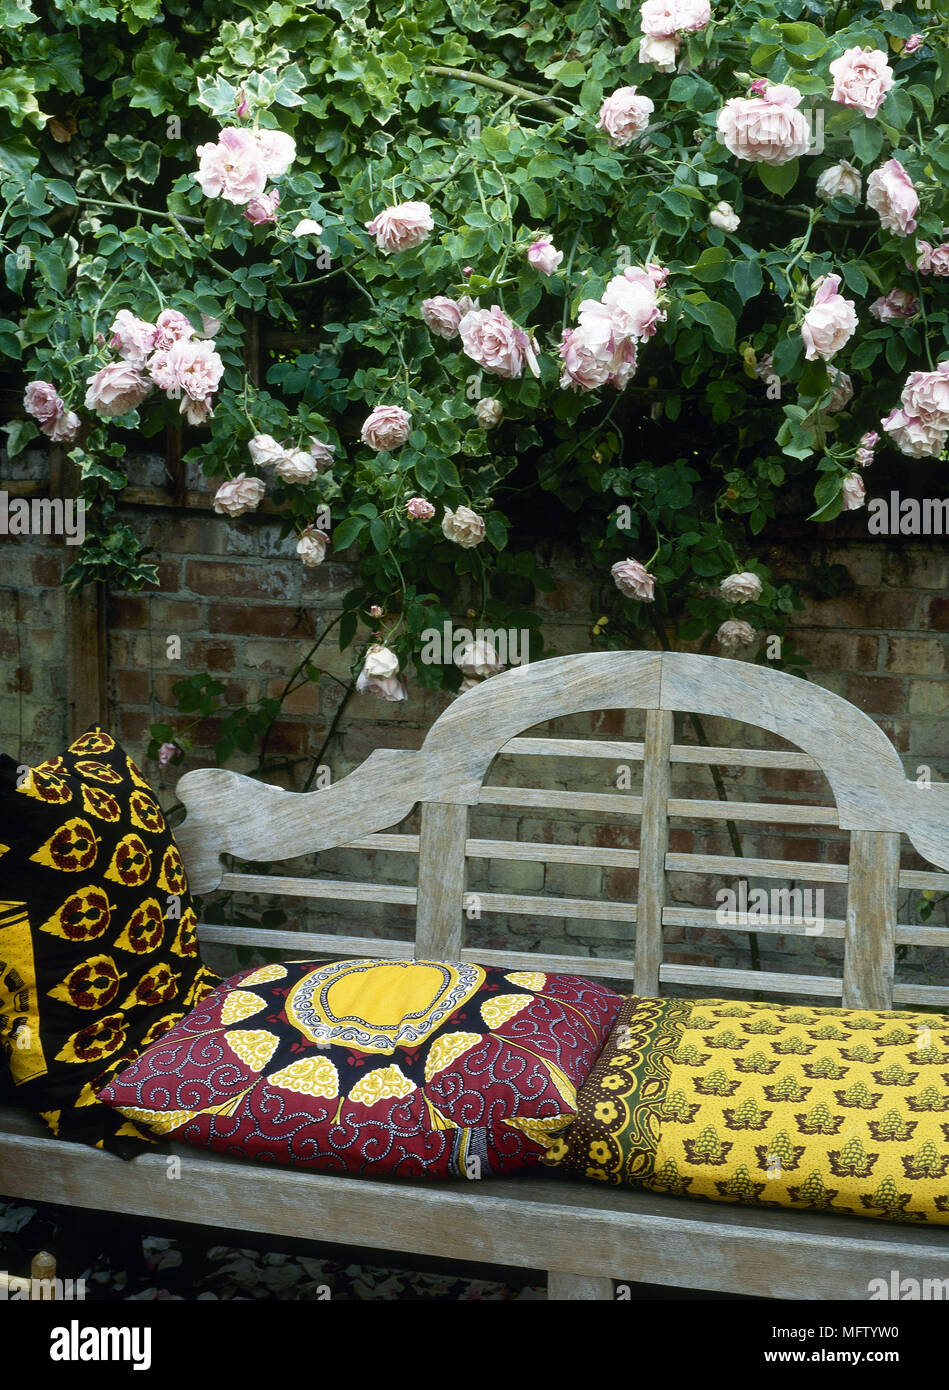 Wooden Garden Bench With Cushions Next To Garden Brick Wall With Climbing  Rose On Wall Fixed Trellis Gardens Detail Seating Rambling Roses